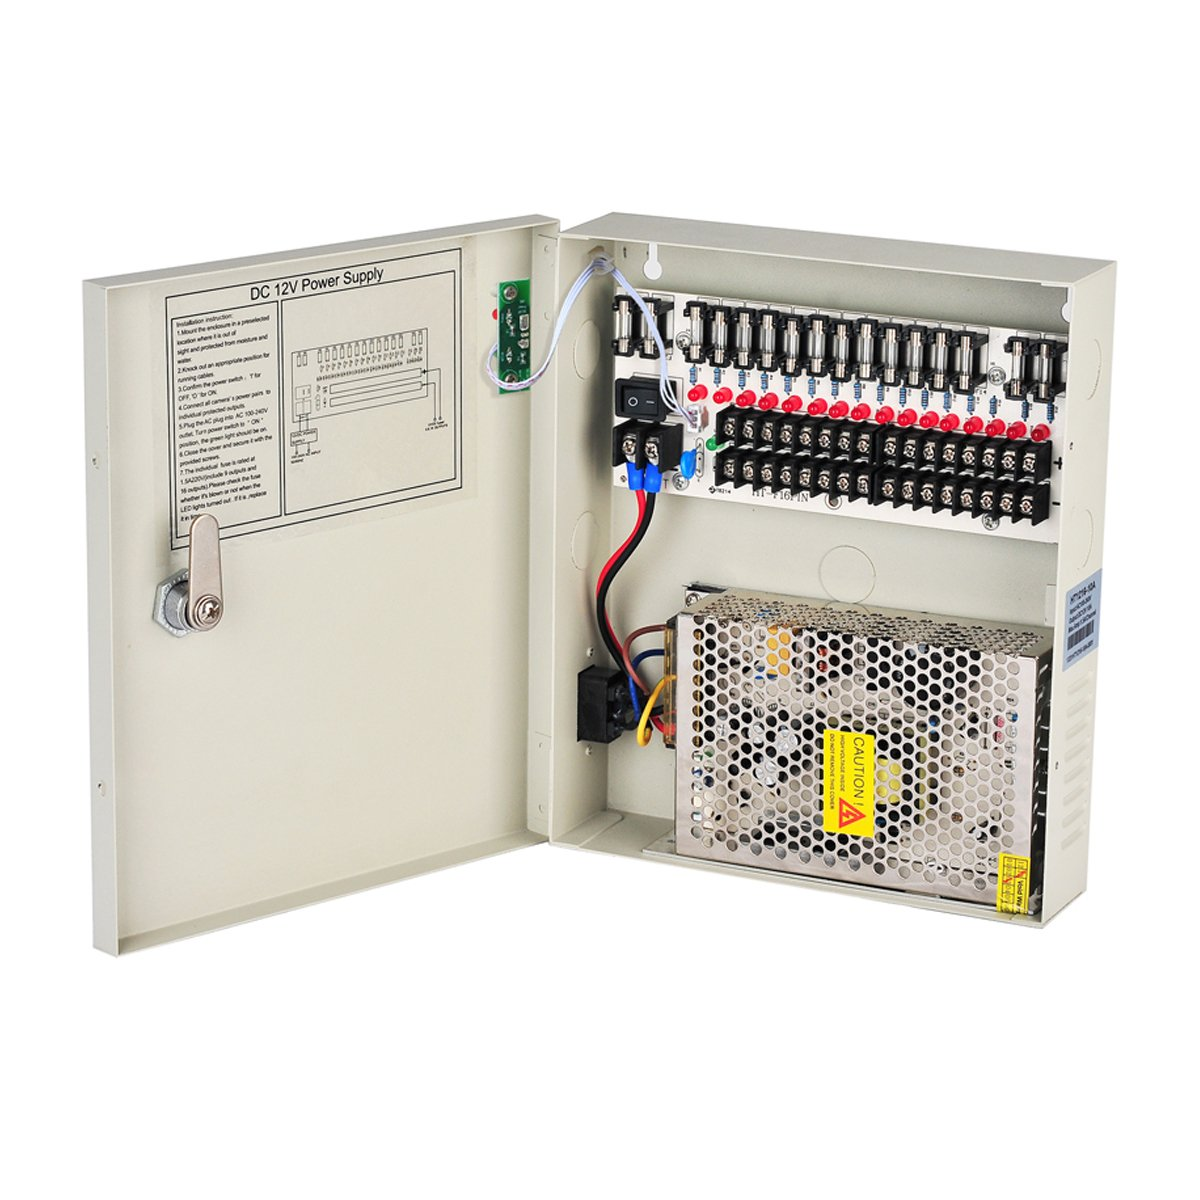 Box In Addition 12 Volt Electrical Junction Box On 60 Fuse Box Wiring